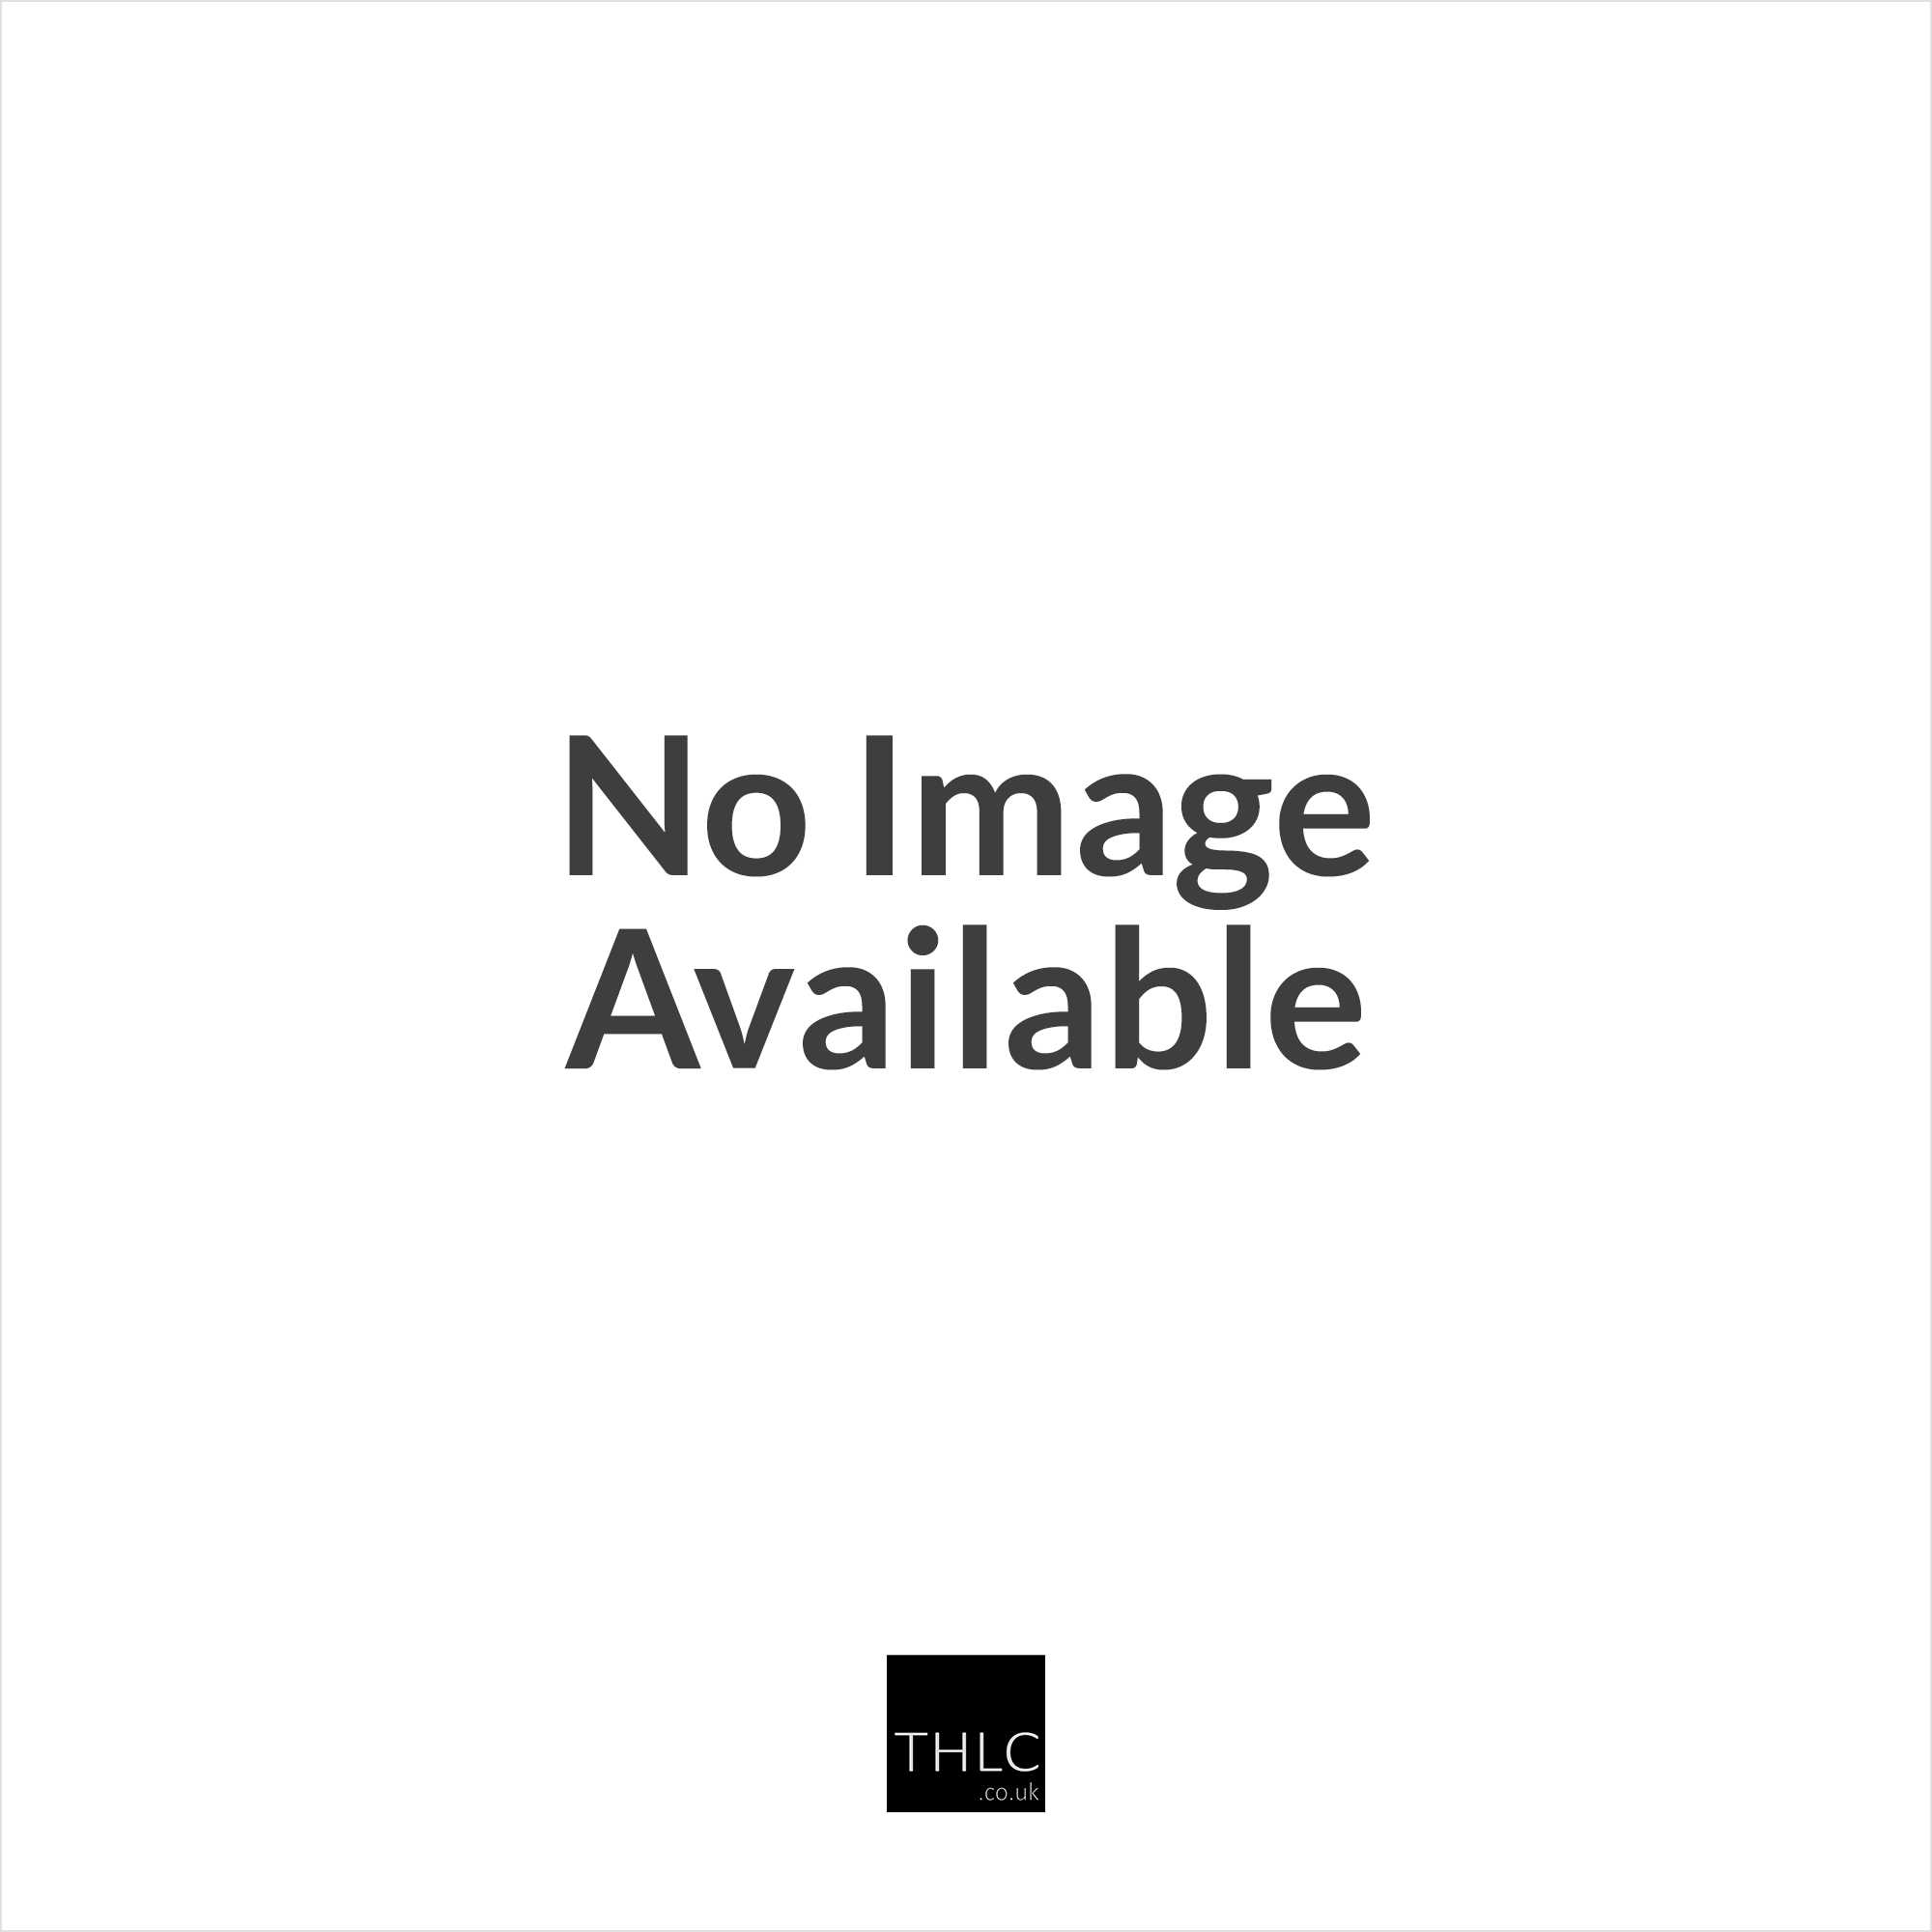 Collier 5 Light Chandelier In Heritage Brass Finish HK/COLLIER5